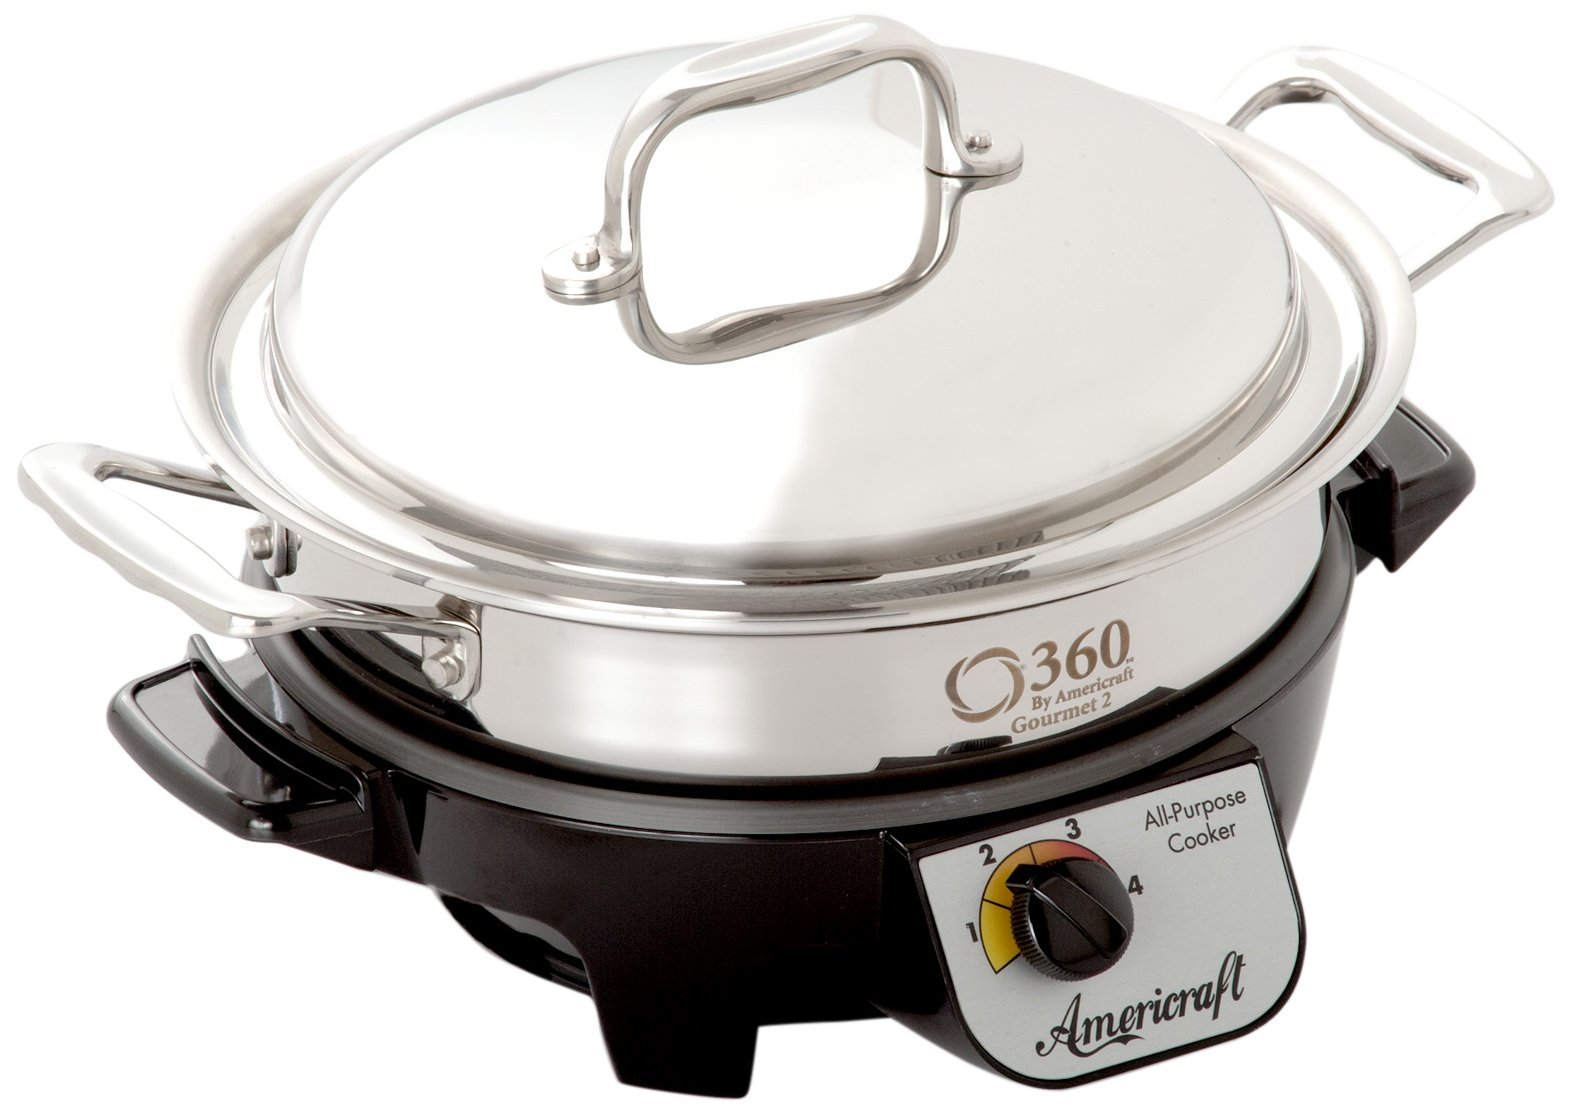 360 Cookware Gourmet Slow Cooker and Induction Capable Non-Leaching Waterless Stainless Steel Casserole with Cover, 2.3-Quart by 360 Cookware